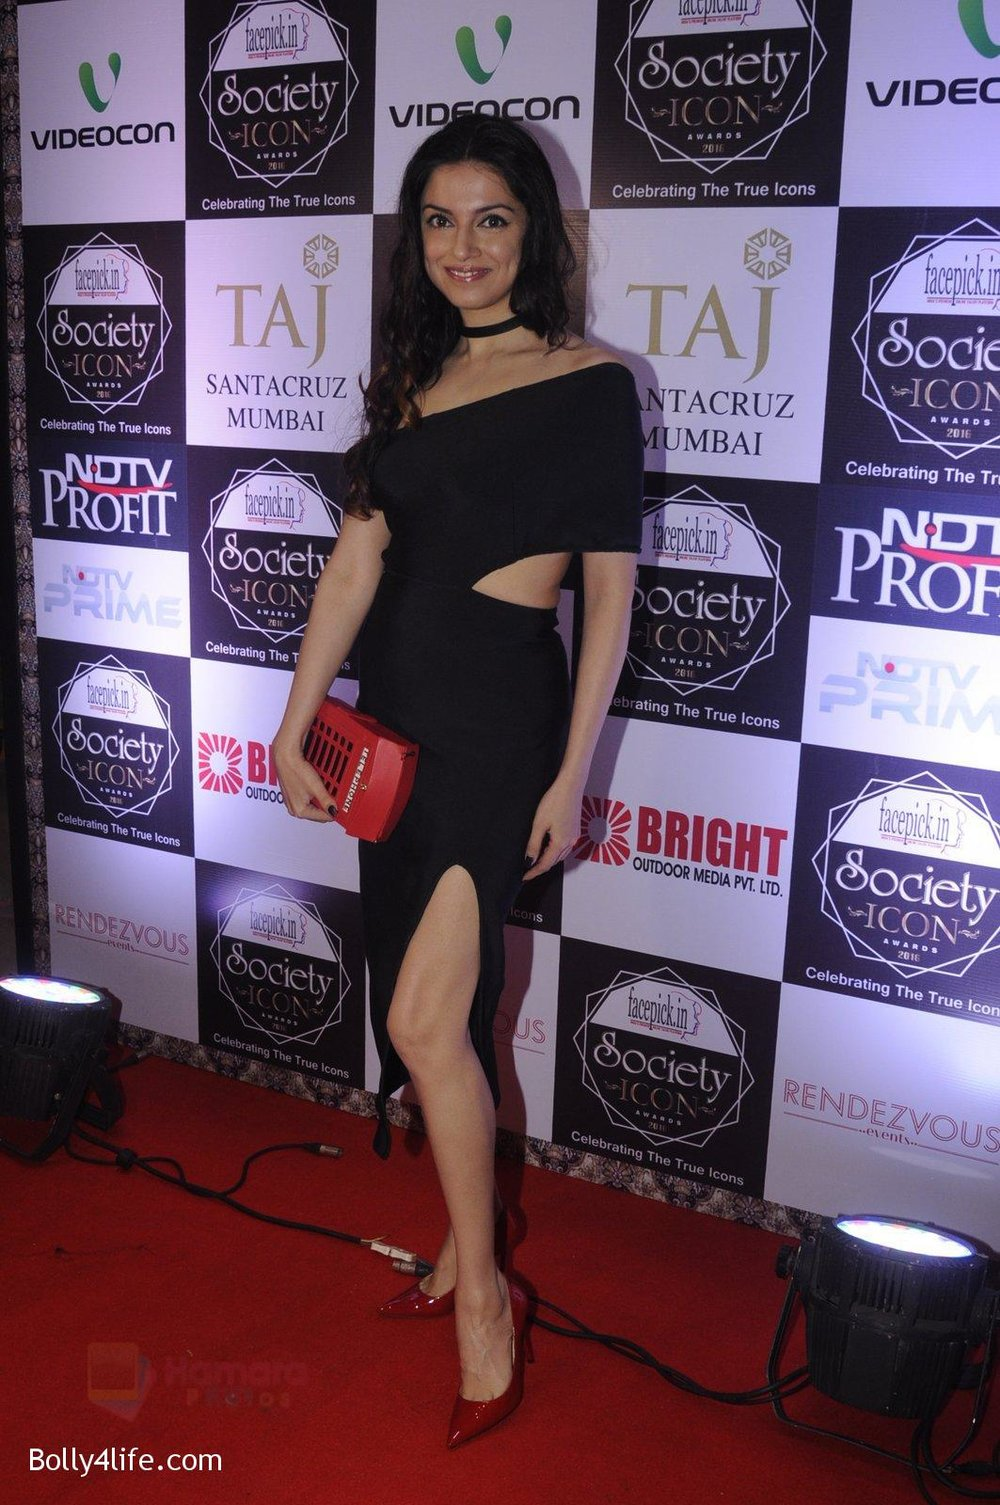 Divya-Kumar-at-Society-Icon-Awards-on-2nd-Oct-2016-52.jpg